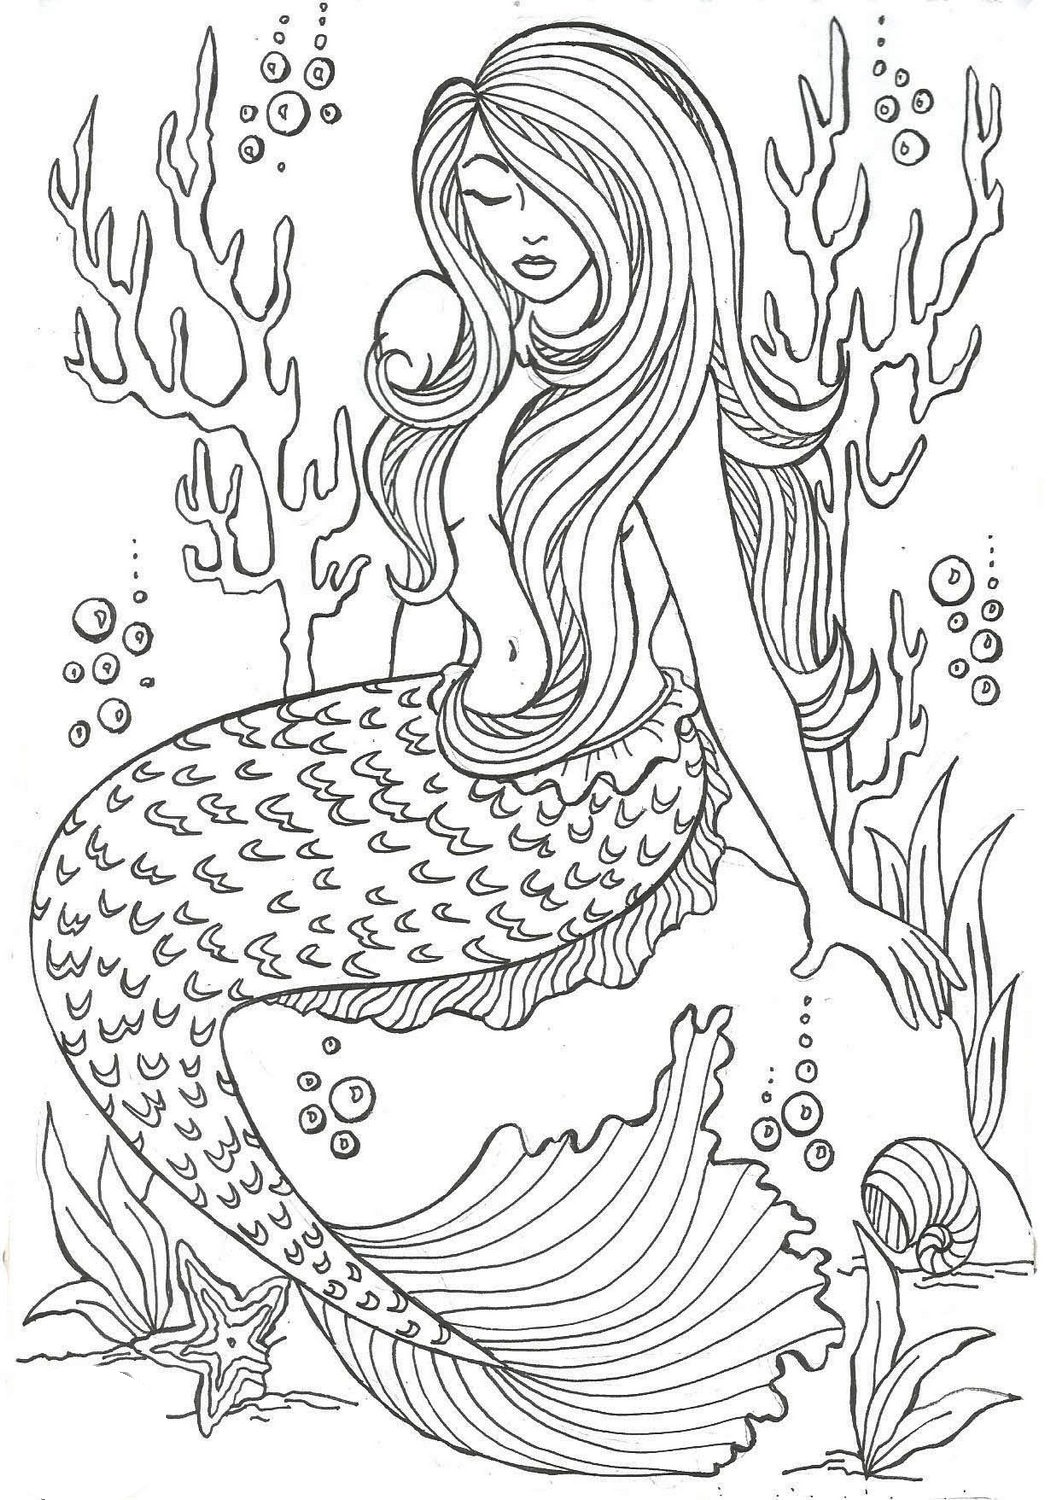 Realistic-Mermaid-Illustrations-Undersea-Coloring-Sheets